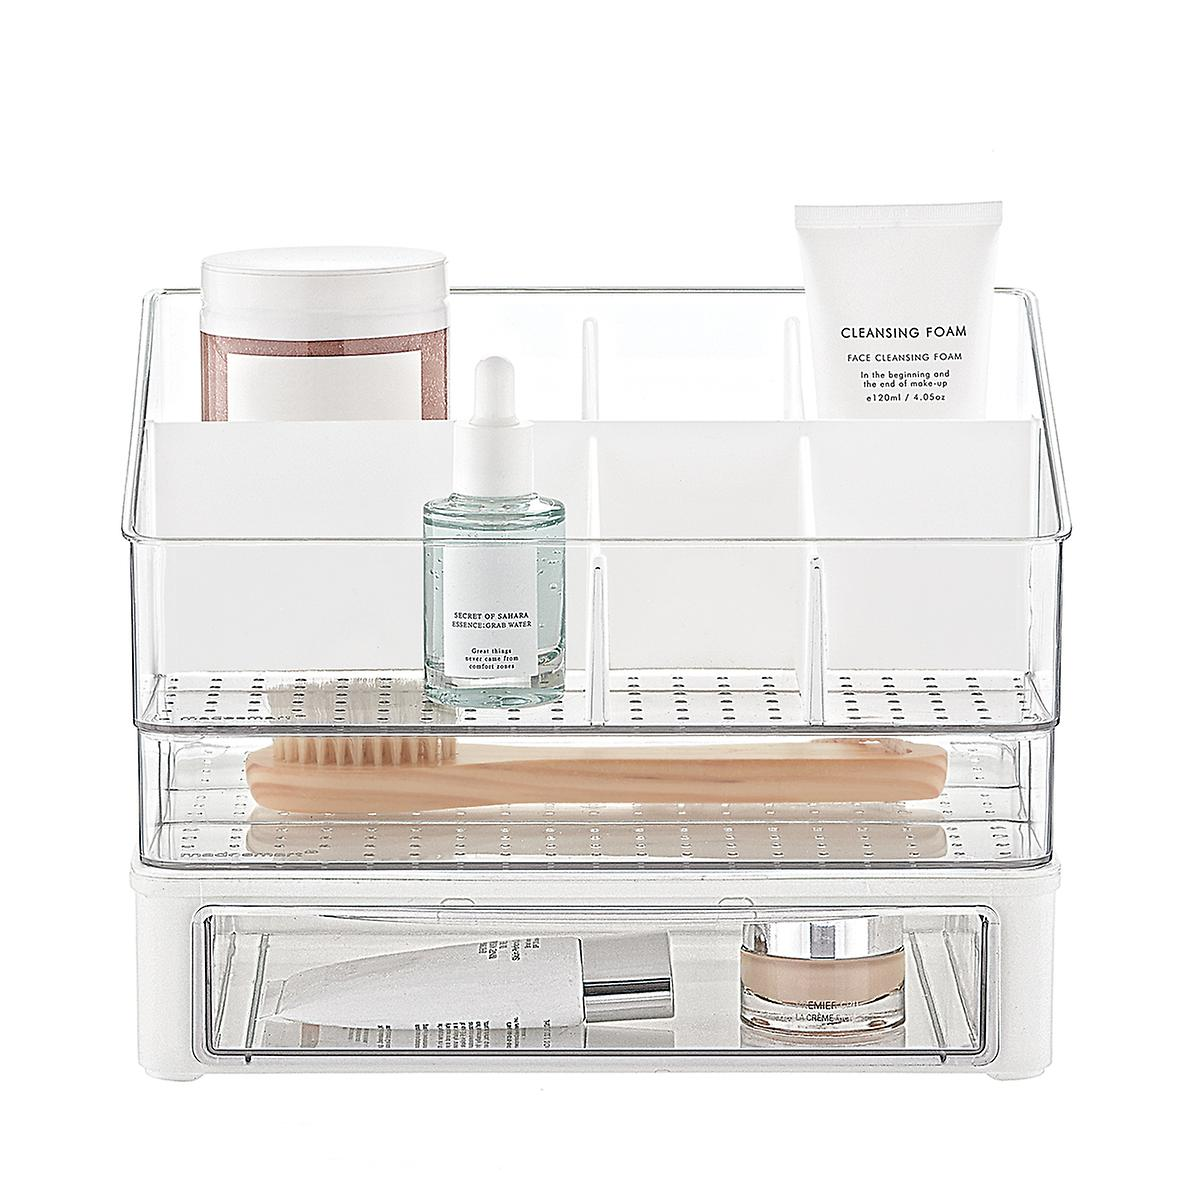 madesmart 1-Drawer Stacking Bath Storage Starter Kit